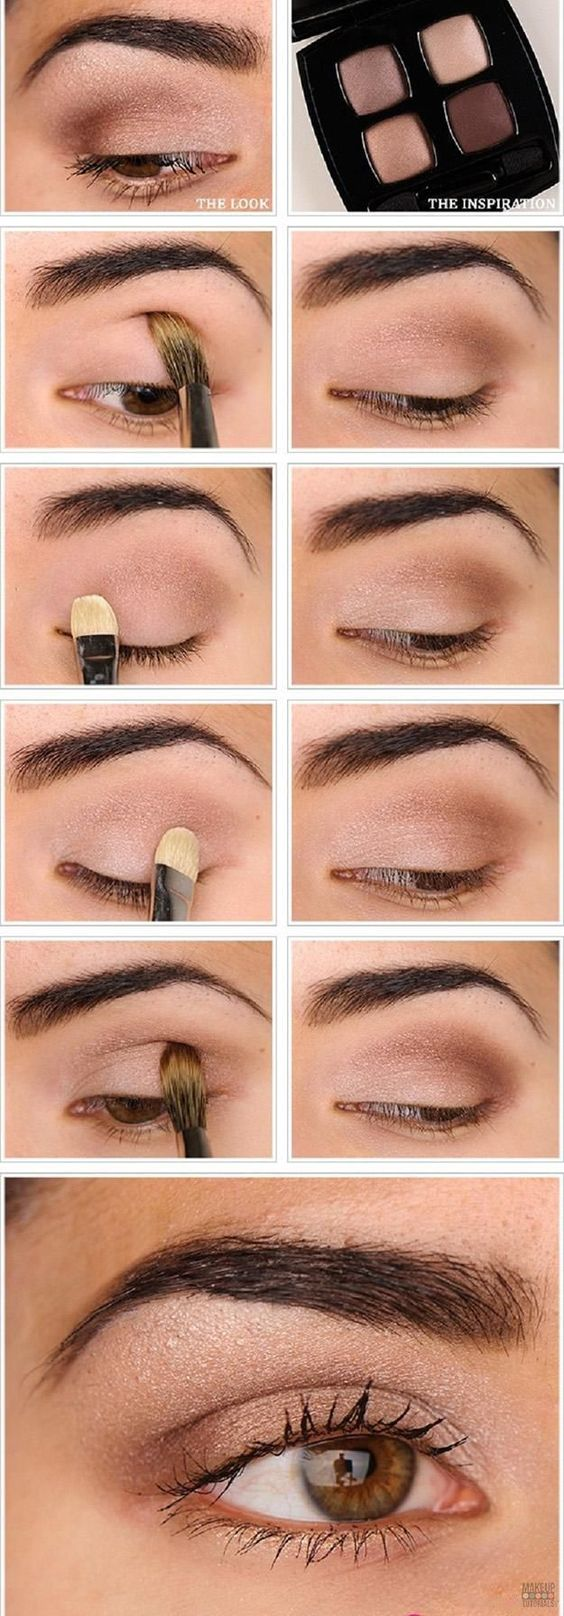 11 Simple Eye Makeup Ideas for Work Outfits - Pretty Designs